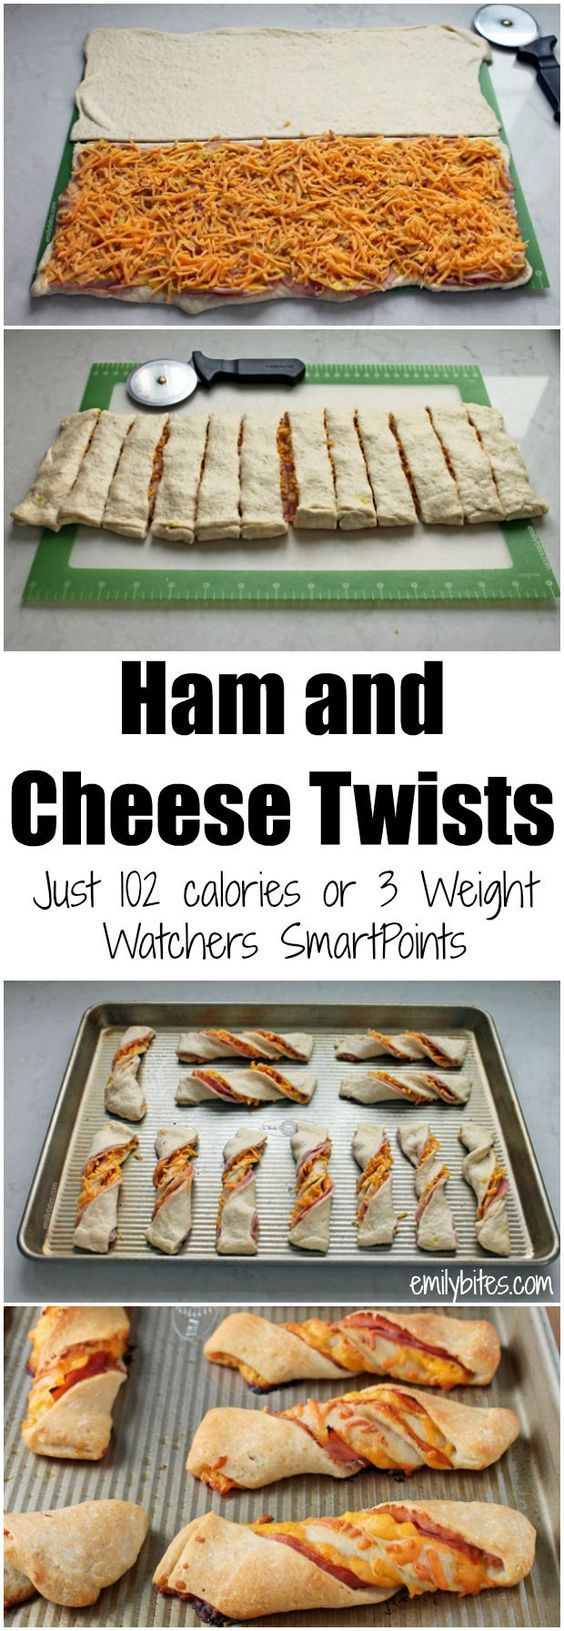 These 4 ingredient Ham and Cheese Twists are so easy and a tasty cross between a sandwich and a breadstick! Just 102 calories or 3 Weight Watchers SmartPoints. www.emilybites.com: